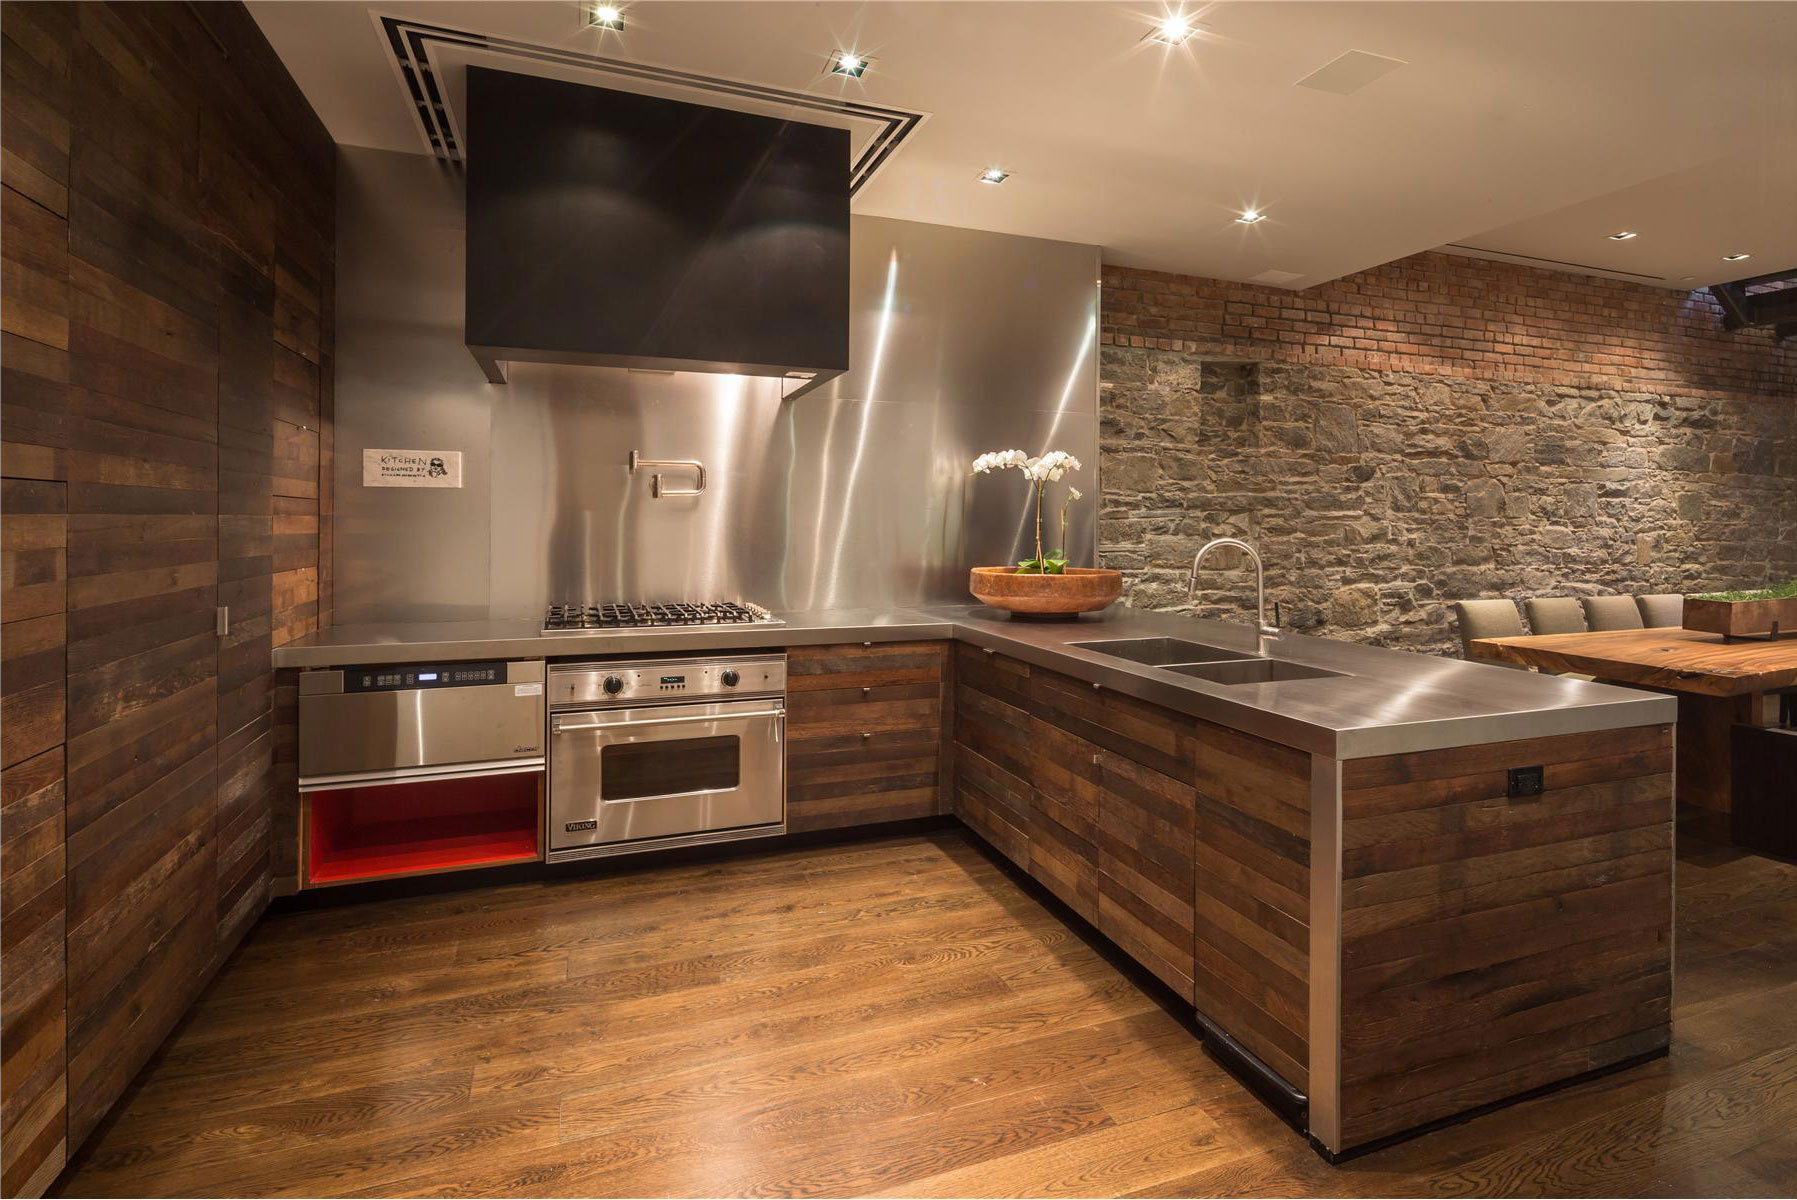 Kitchen Wall Covering Ideas With Steel Set